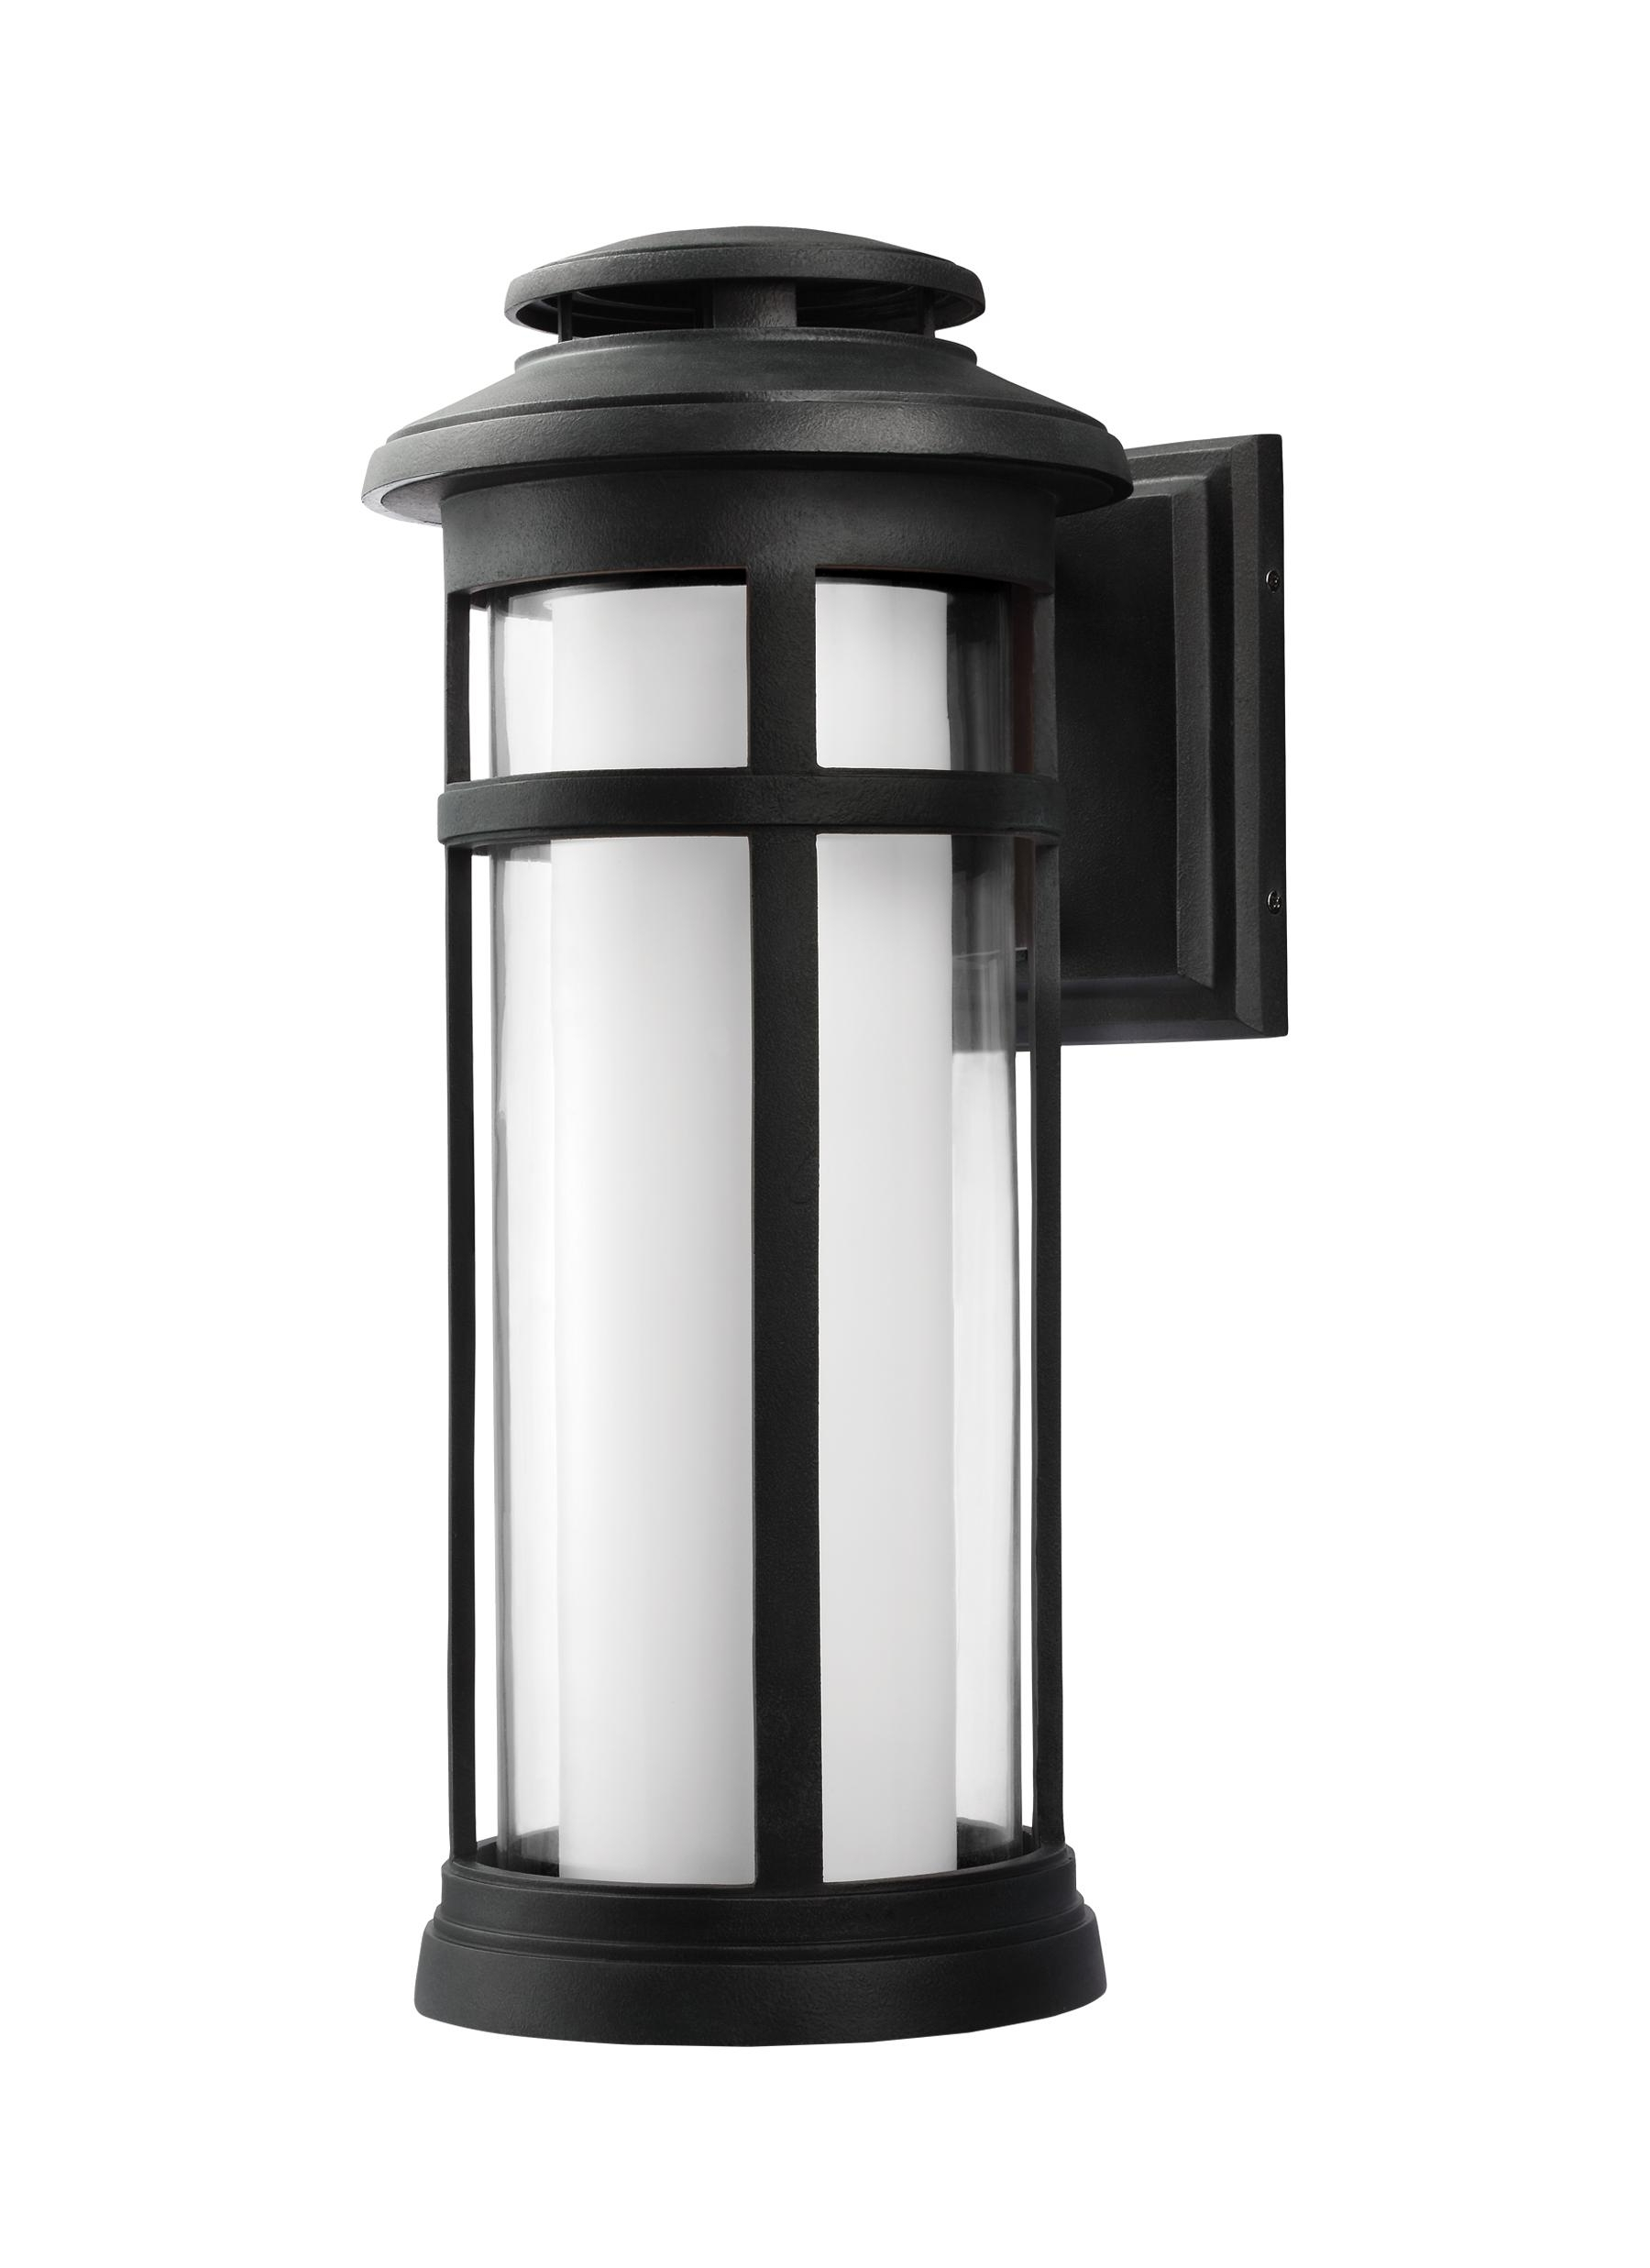 Well Known Zinc Outdoor Lanterns With Ol12502dwz Led,1 – Light Outdoor Wall Lantern,dark Weathered Zinc (View 11 of 20)